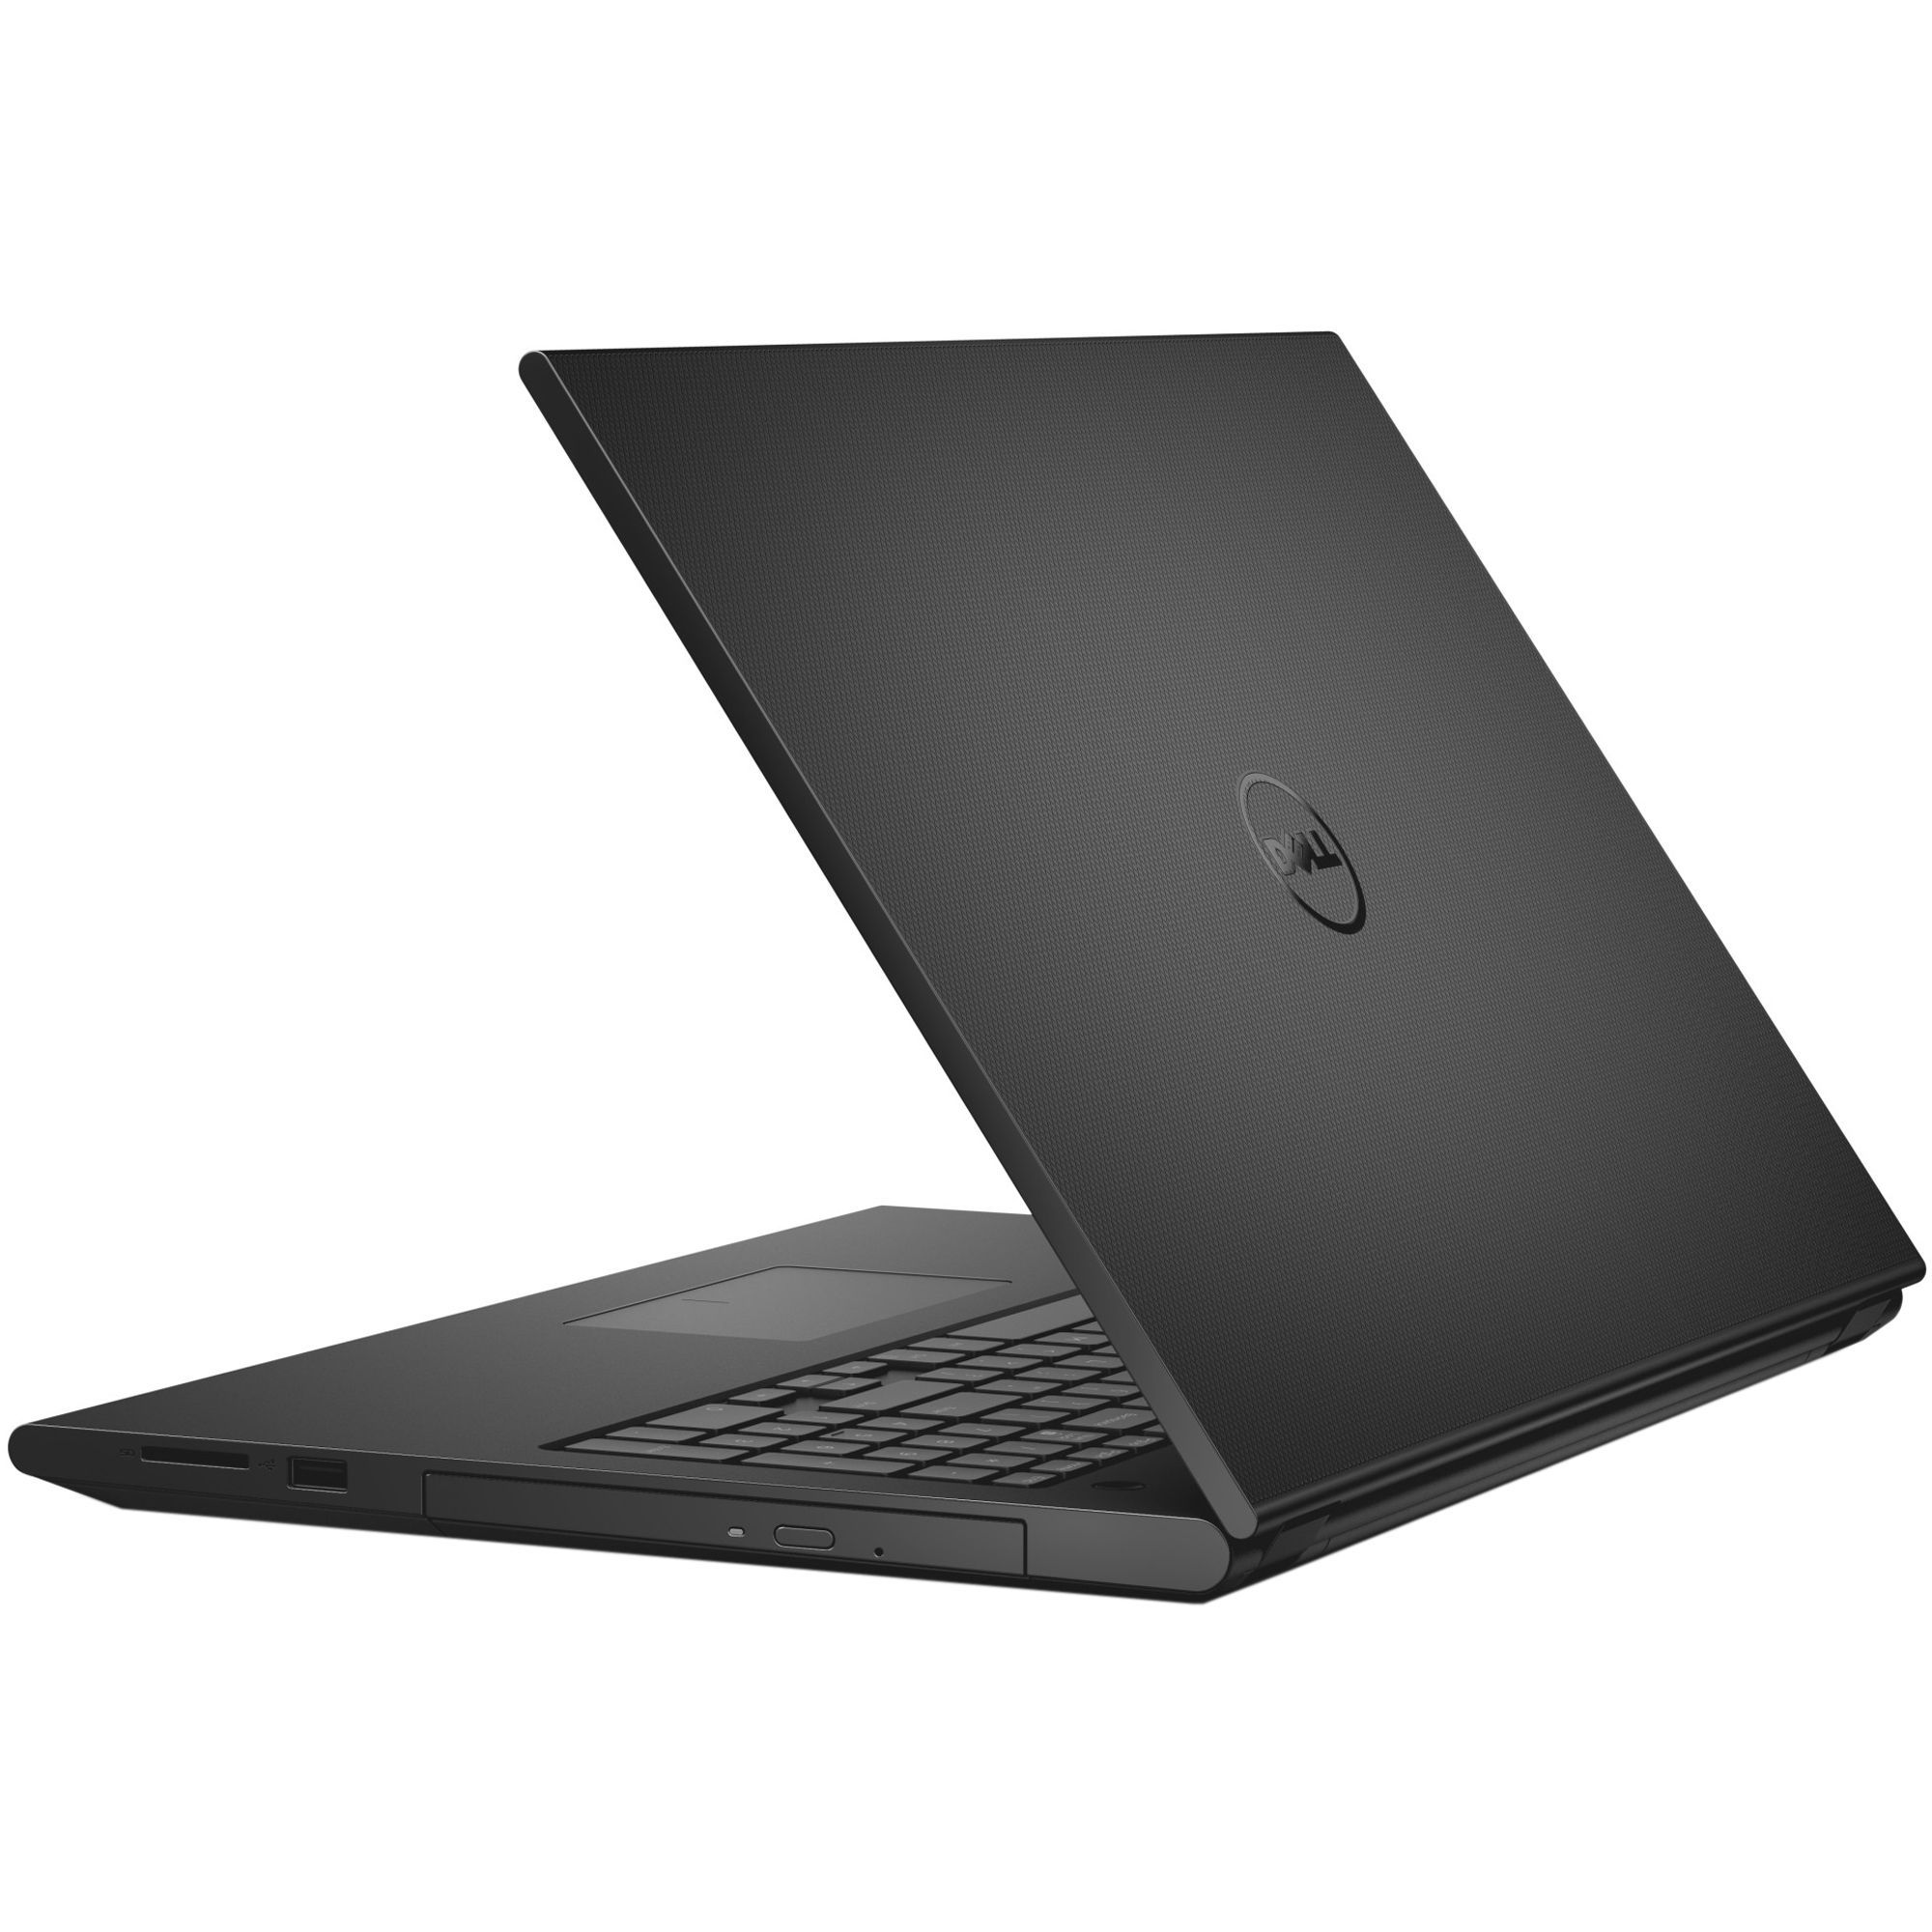 hp 8570p core i7 3rd gen with ati | altyseer com in 2019 | Laptop